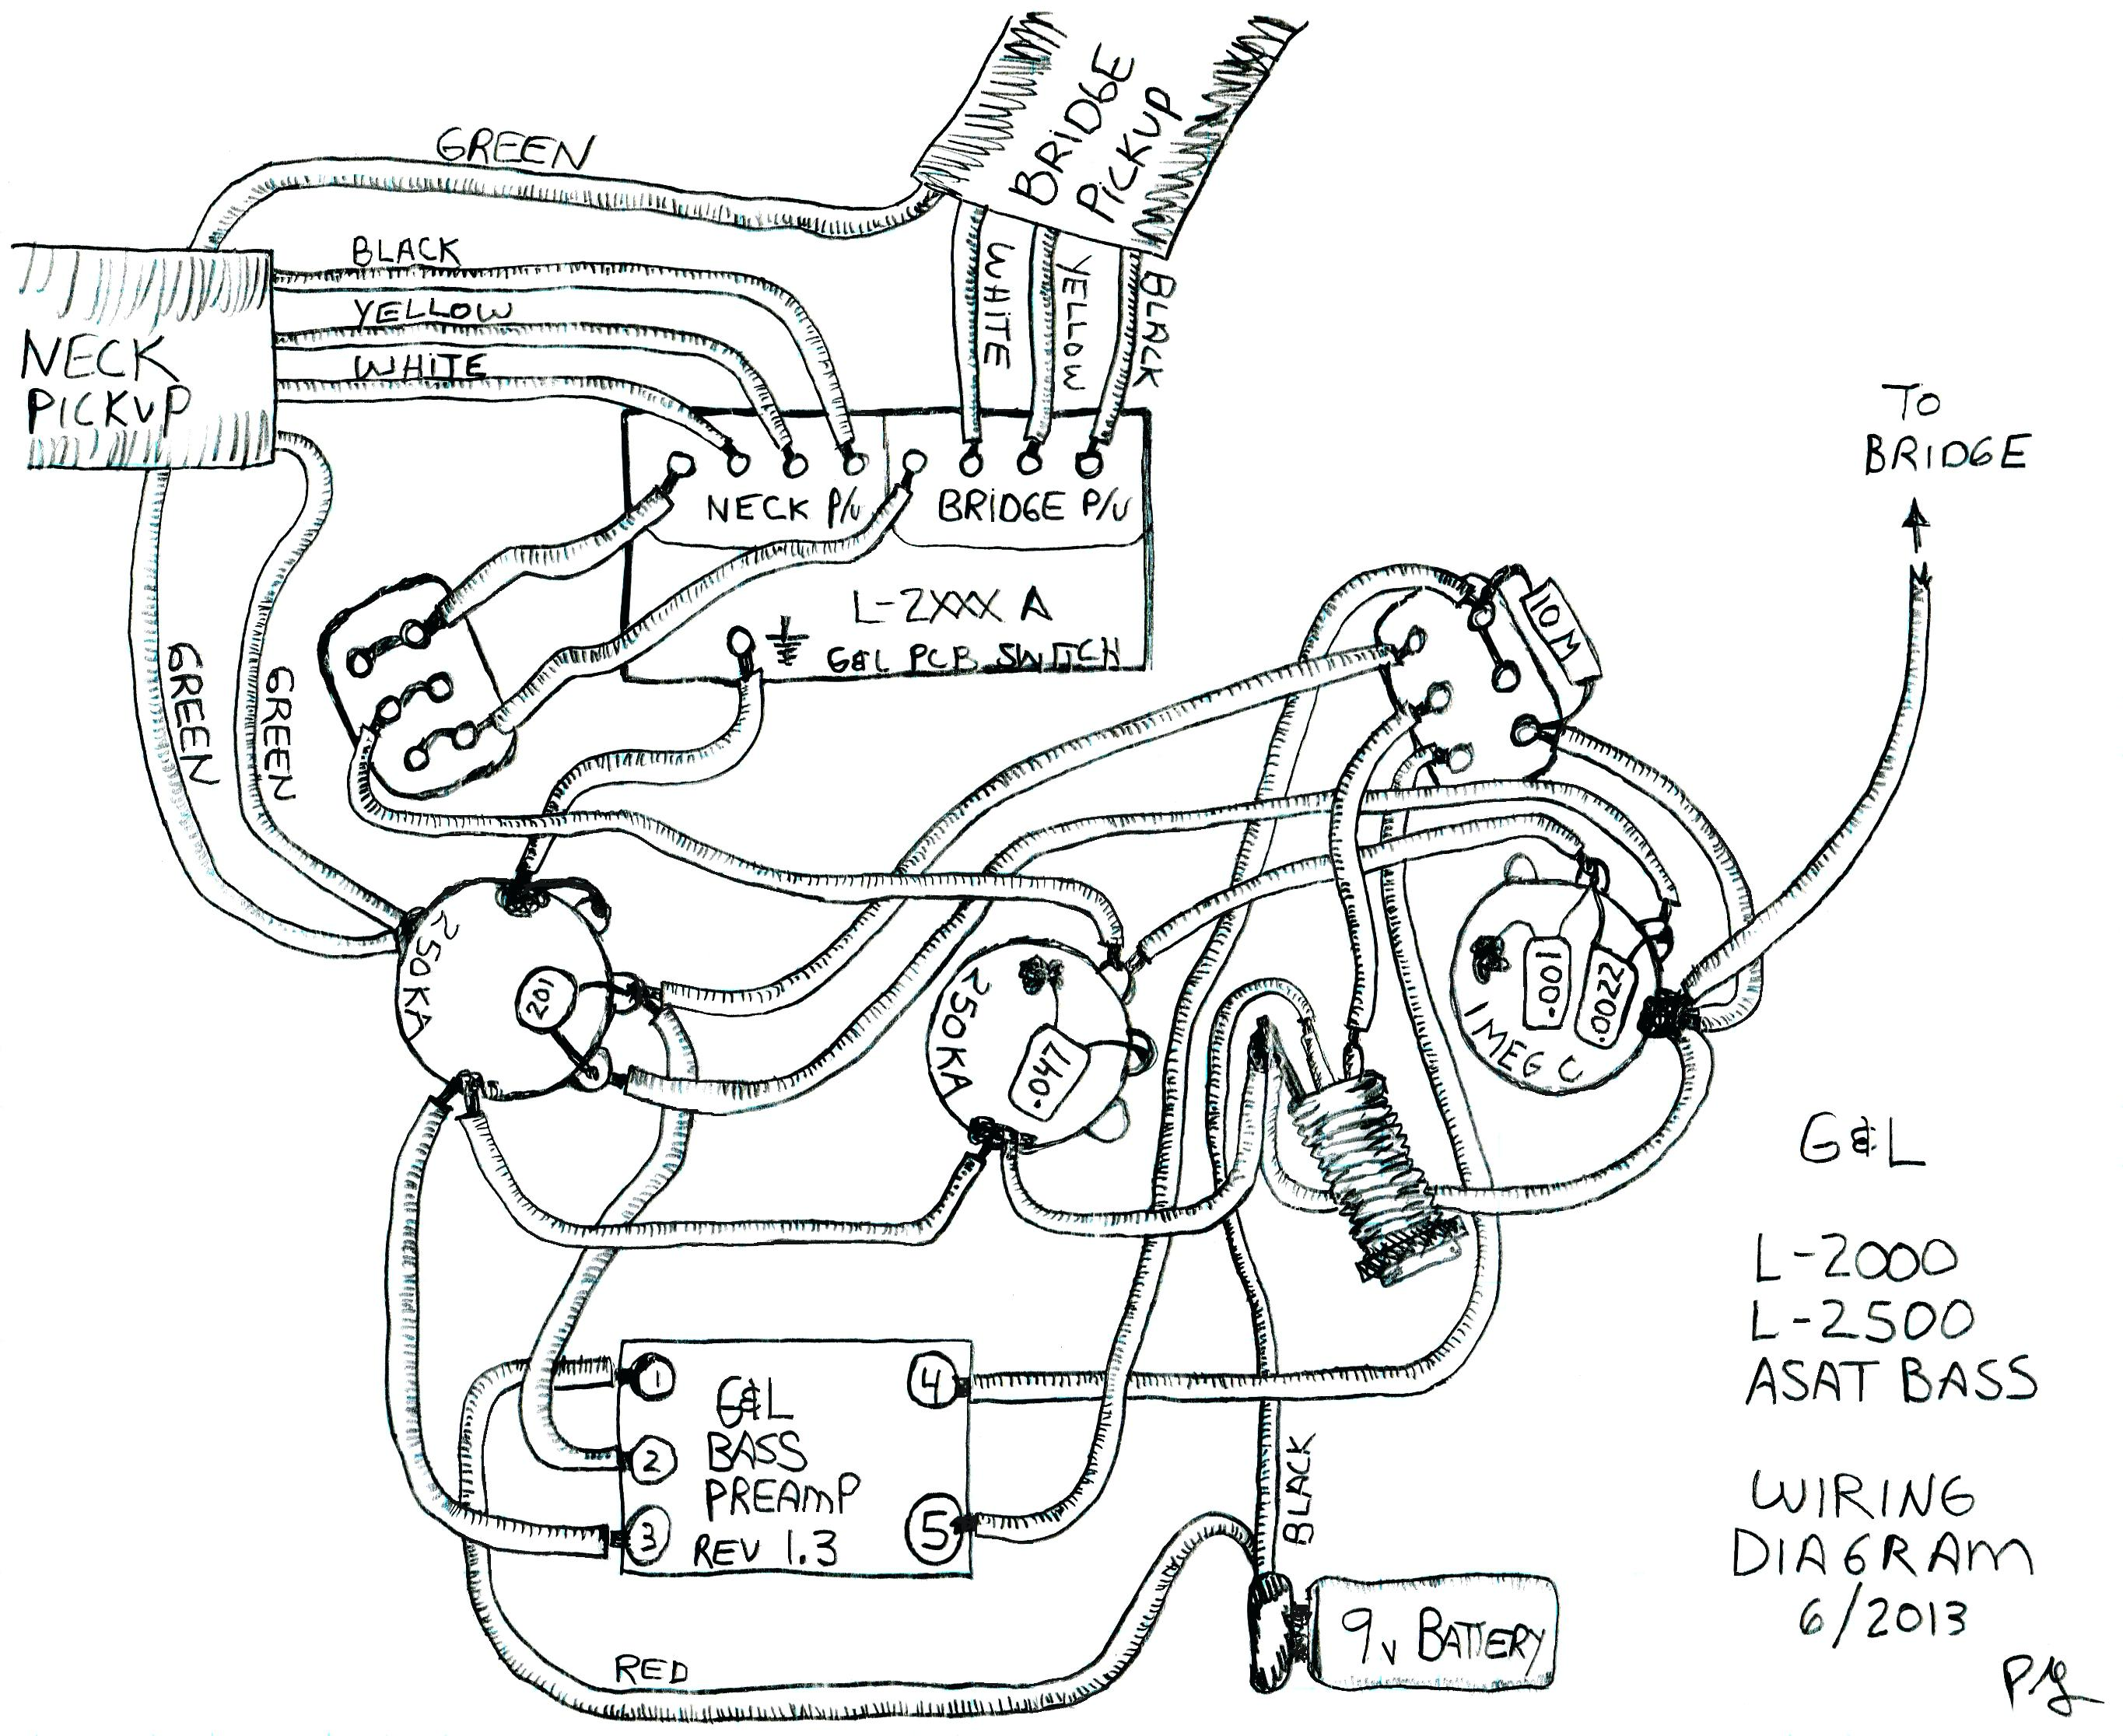 jack les paul wiring diagram